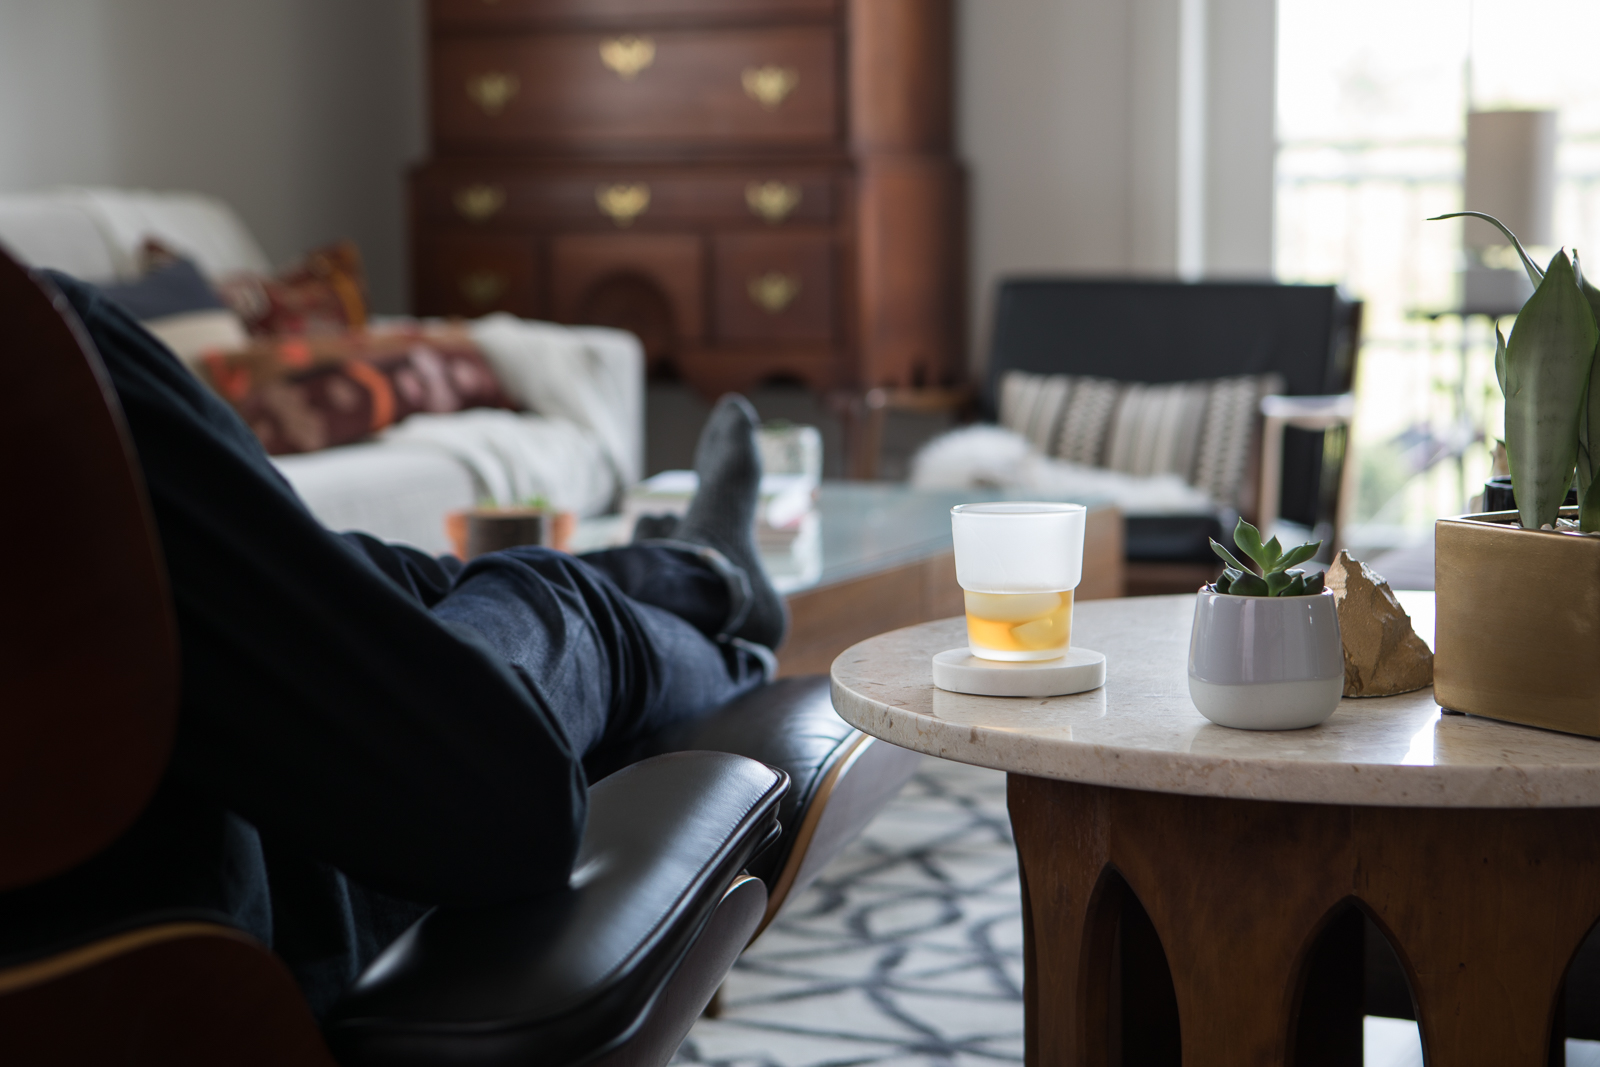 Keep your house whiskey ready - It's been said that there's no such thing as a bad bourbon—just good ones and better ones. Keep your daily sipper at the ready (no matter what kind) for a dose of evening relaxation.